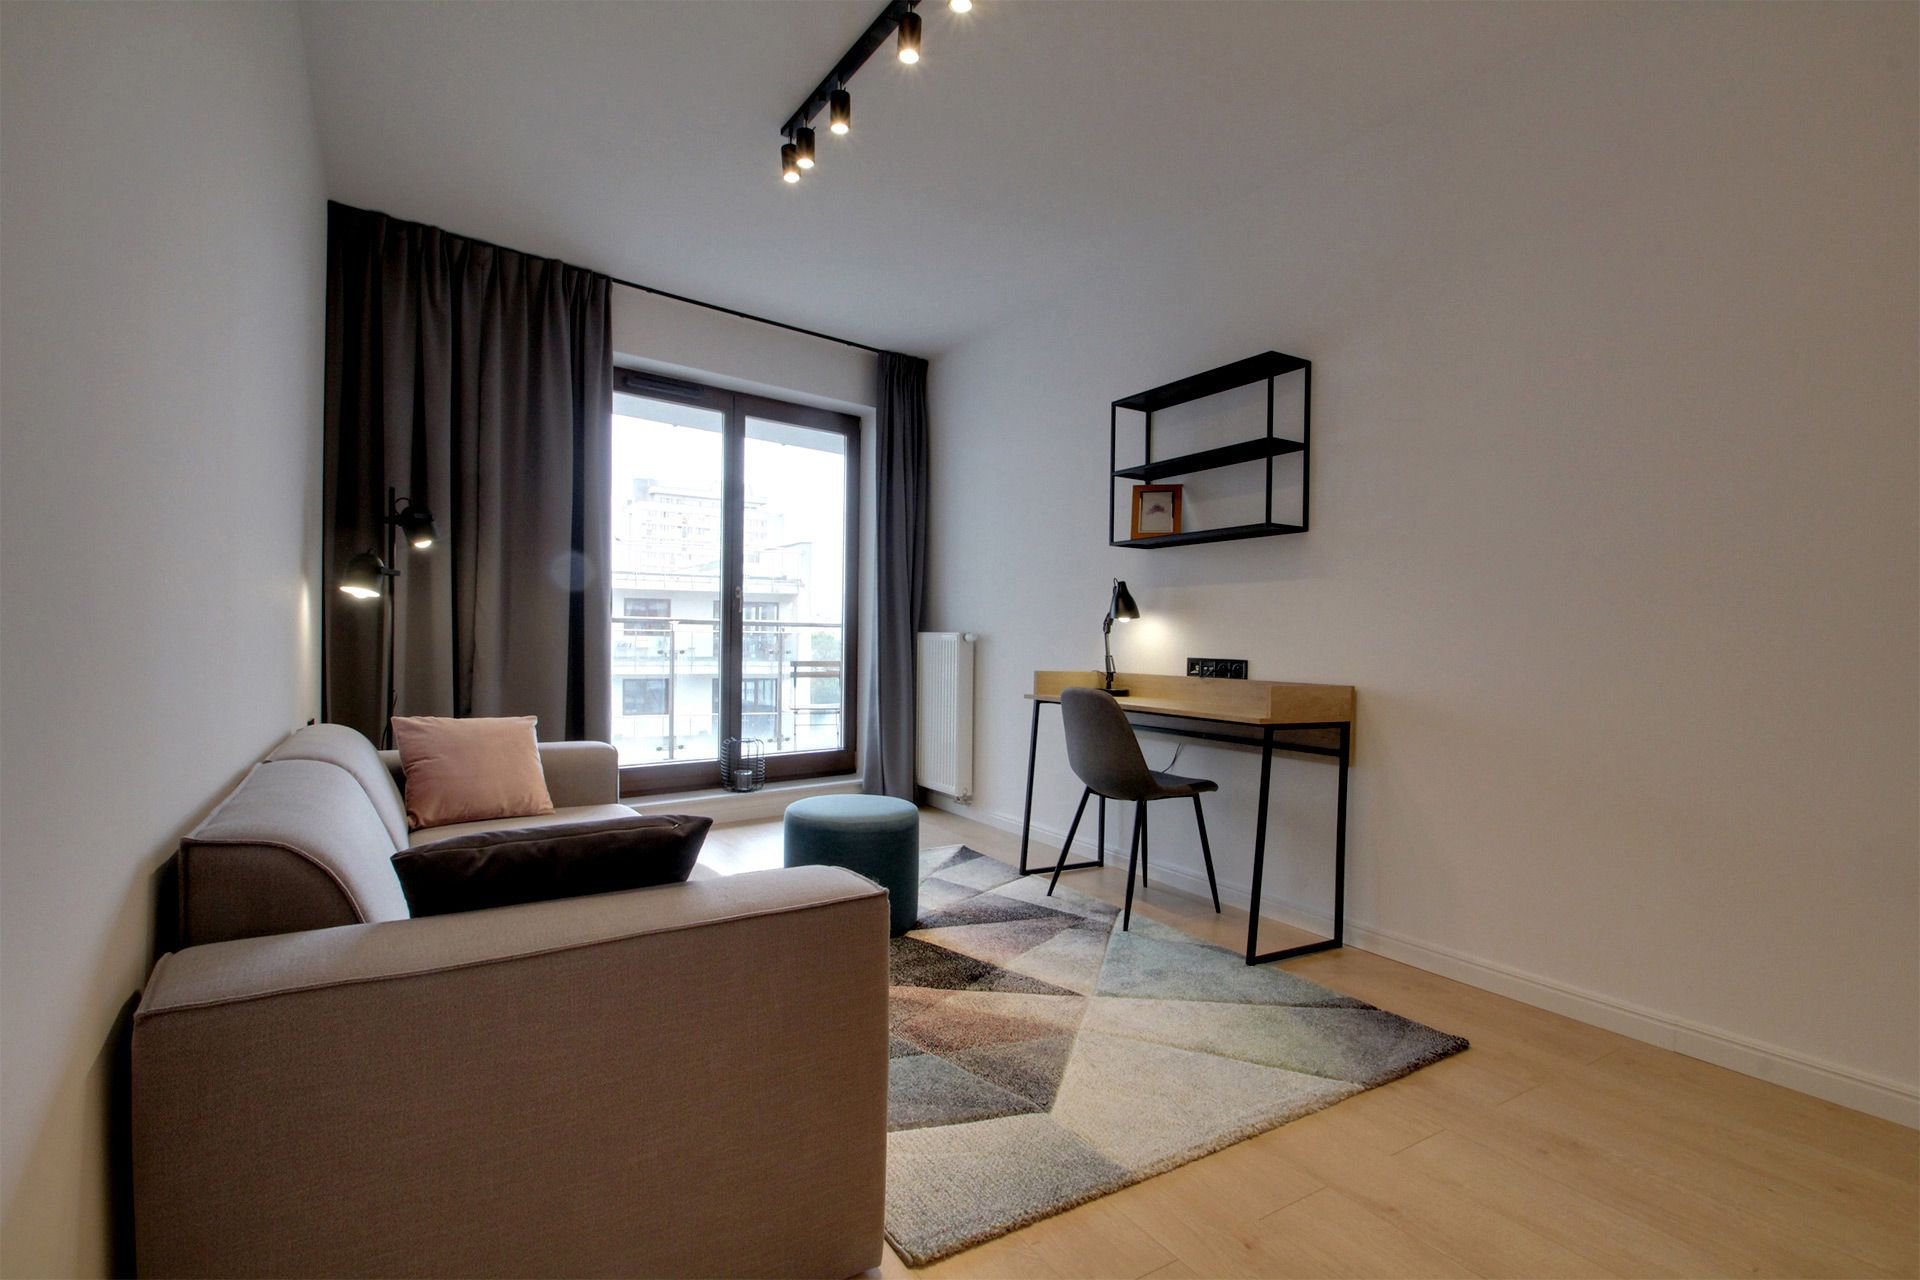 1 Bedroom - Large apartment to rent in Warsaw UPR-A-065-1